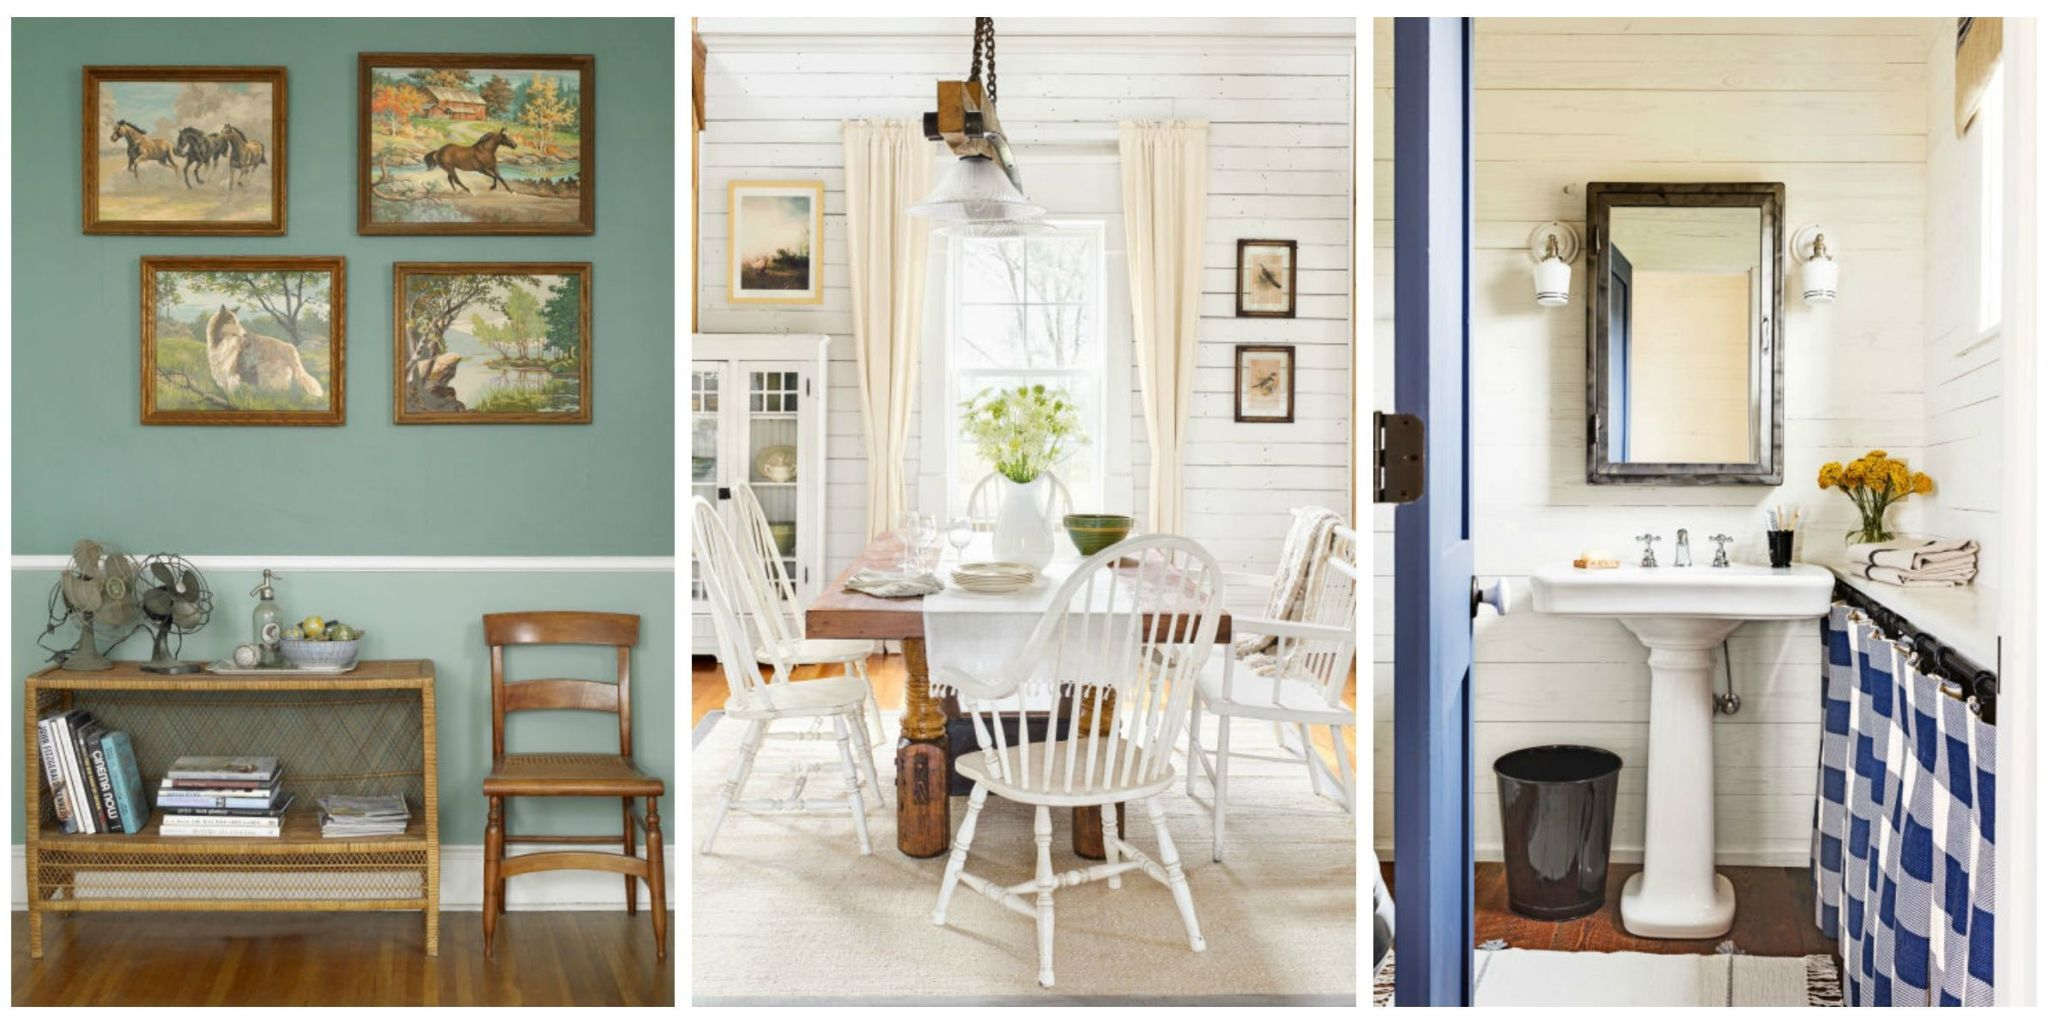 30+ Inexpensive Decorating Ideas - How to Decorate on a Budget